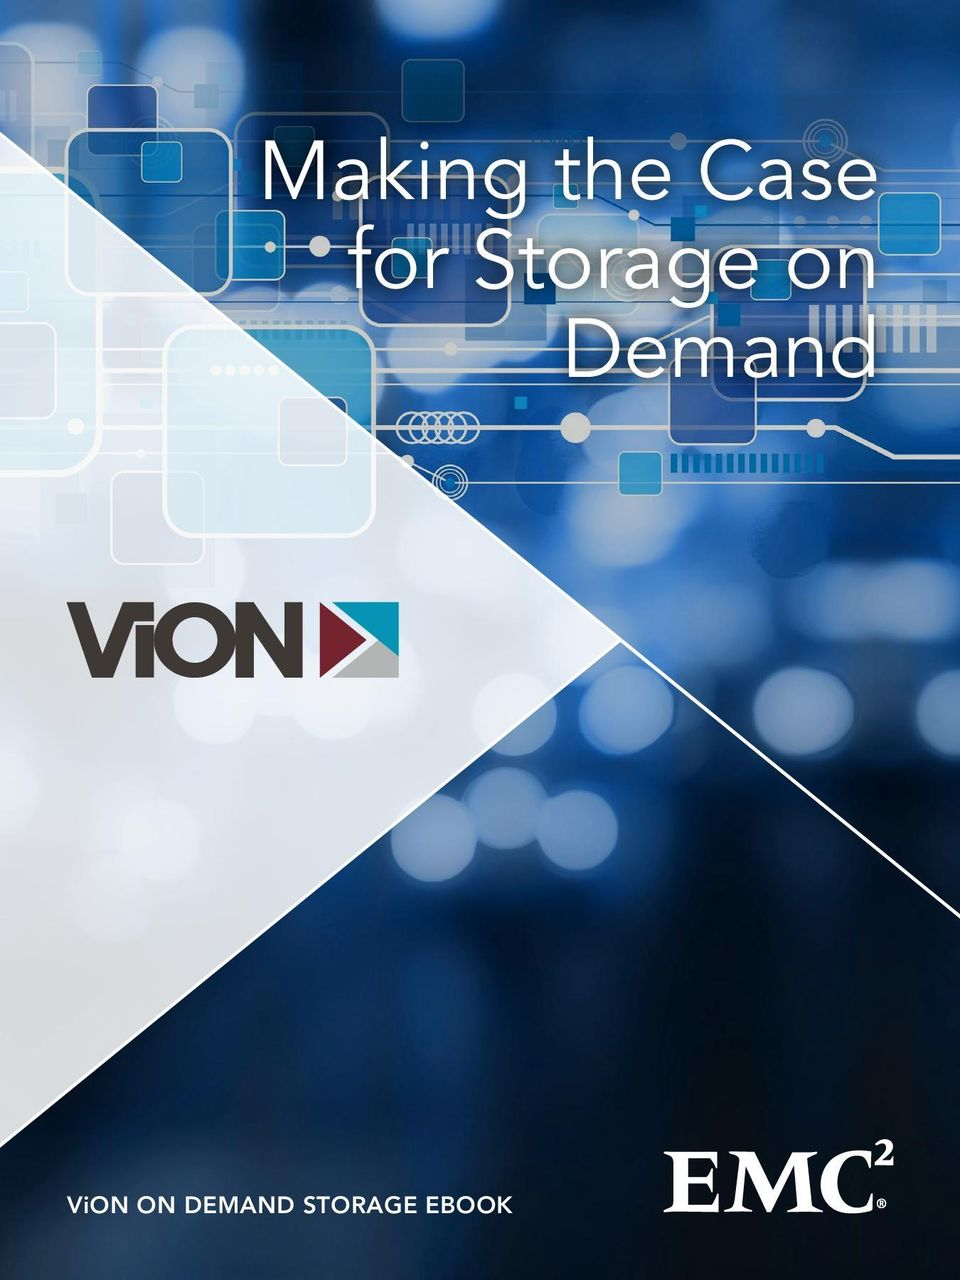 Demand ViON ON